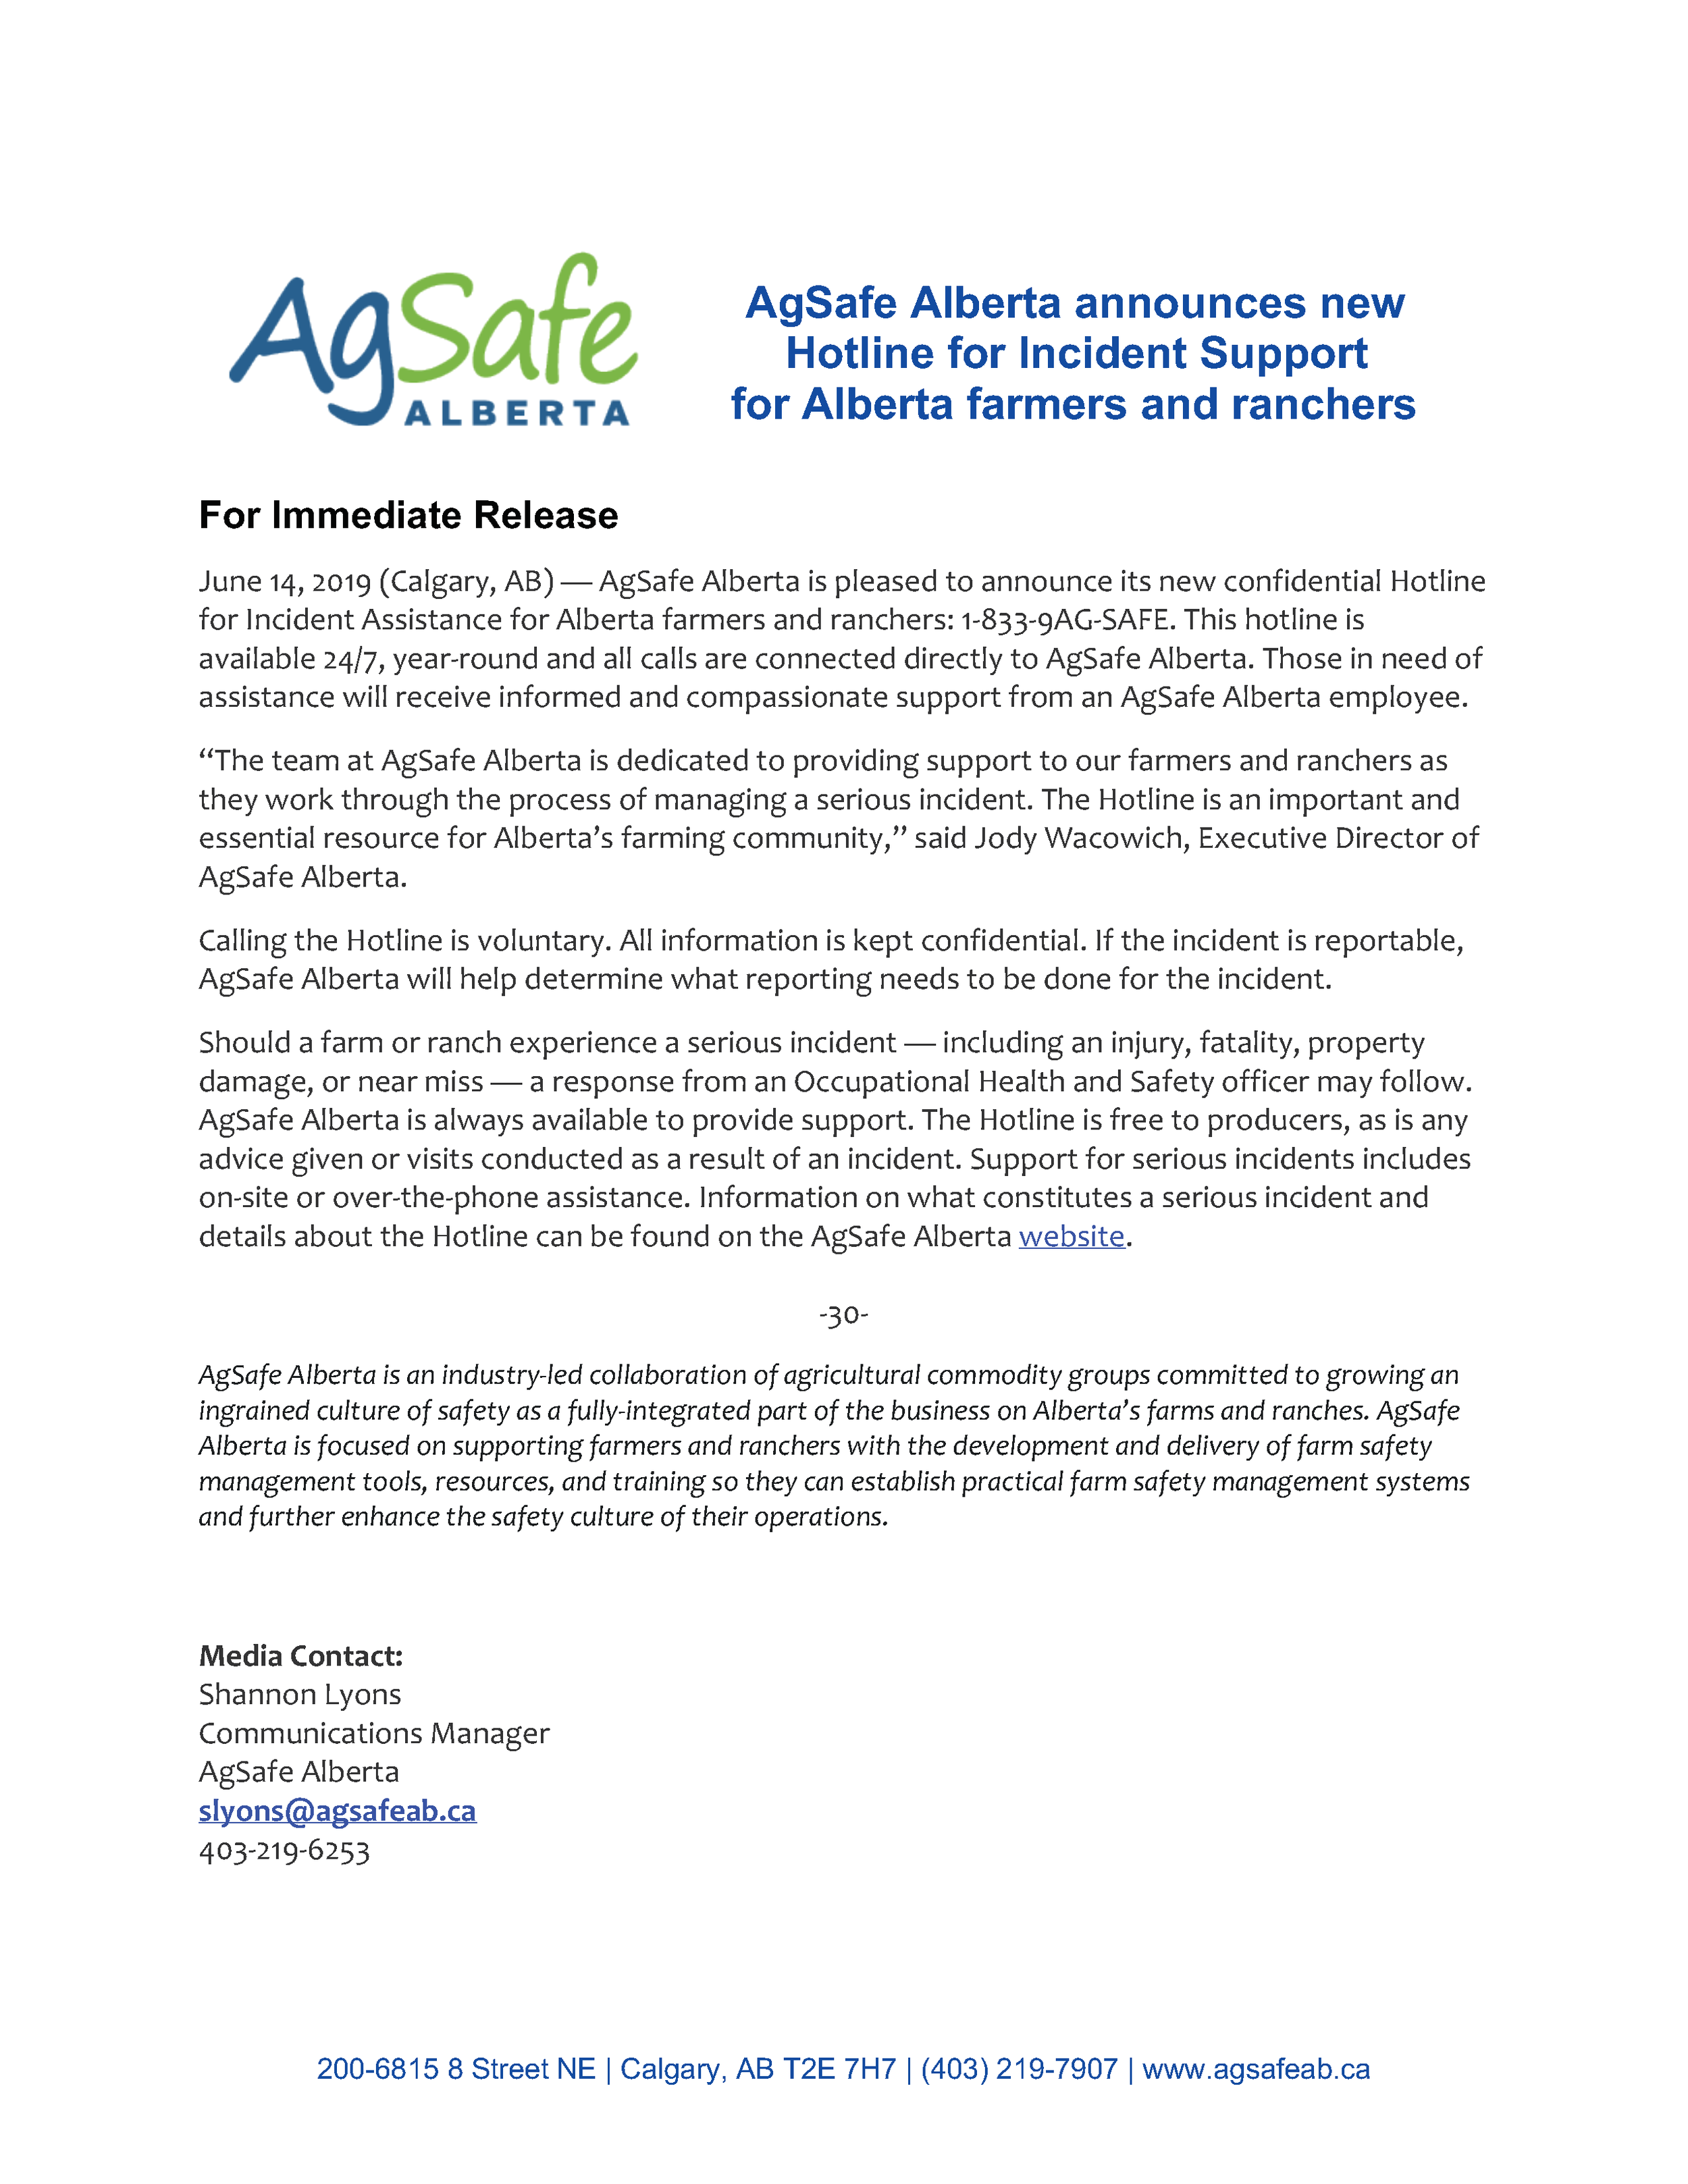 AgSafe Alberta announces new Incident Support Hotline.png